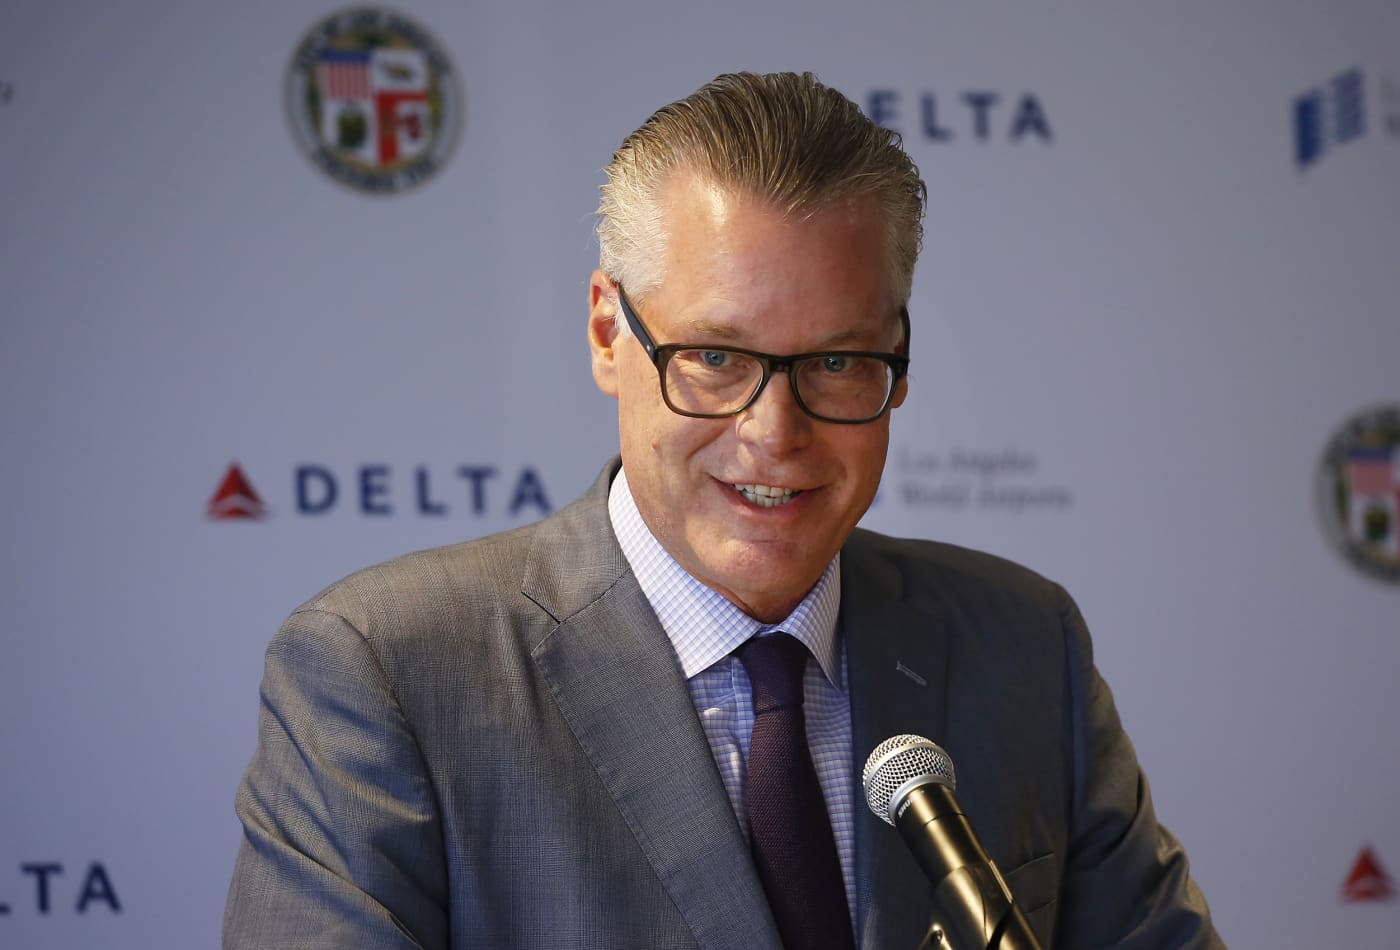 Delta Air Lines CEO announces the carrier will go 'fully carbon neutral' next month